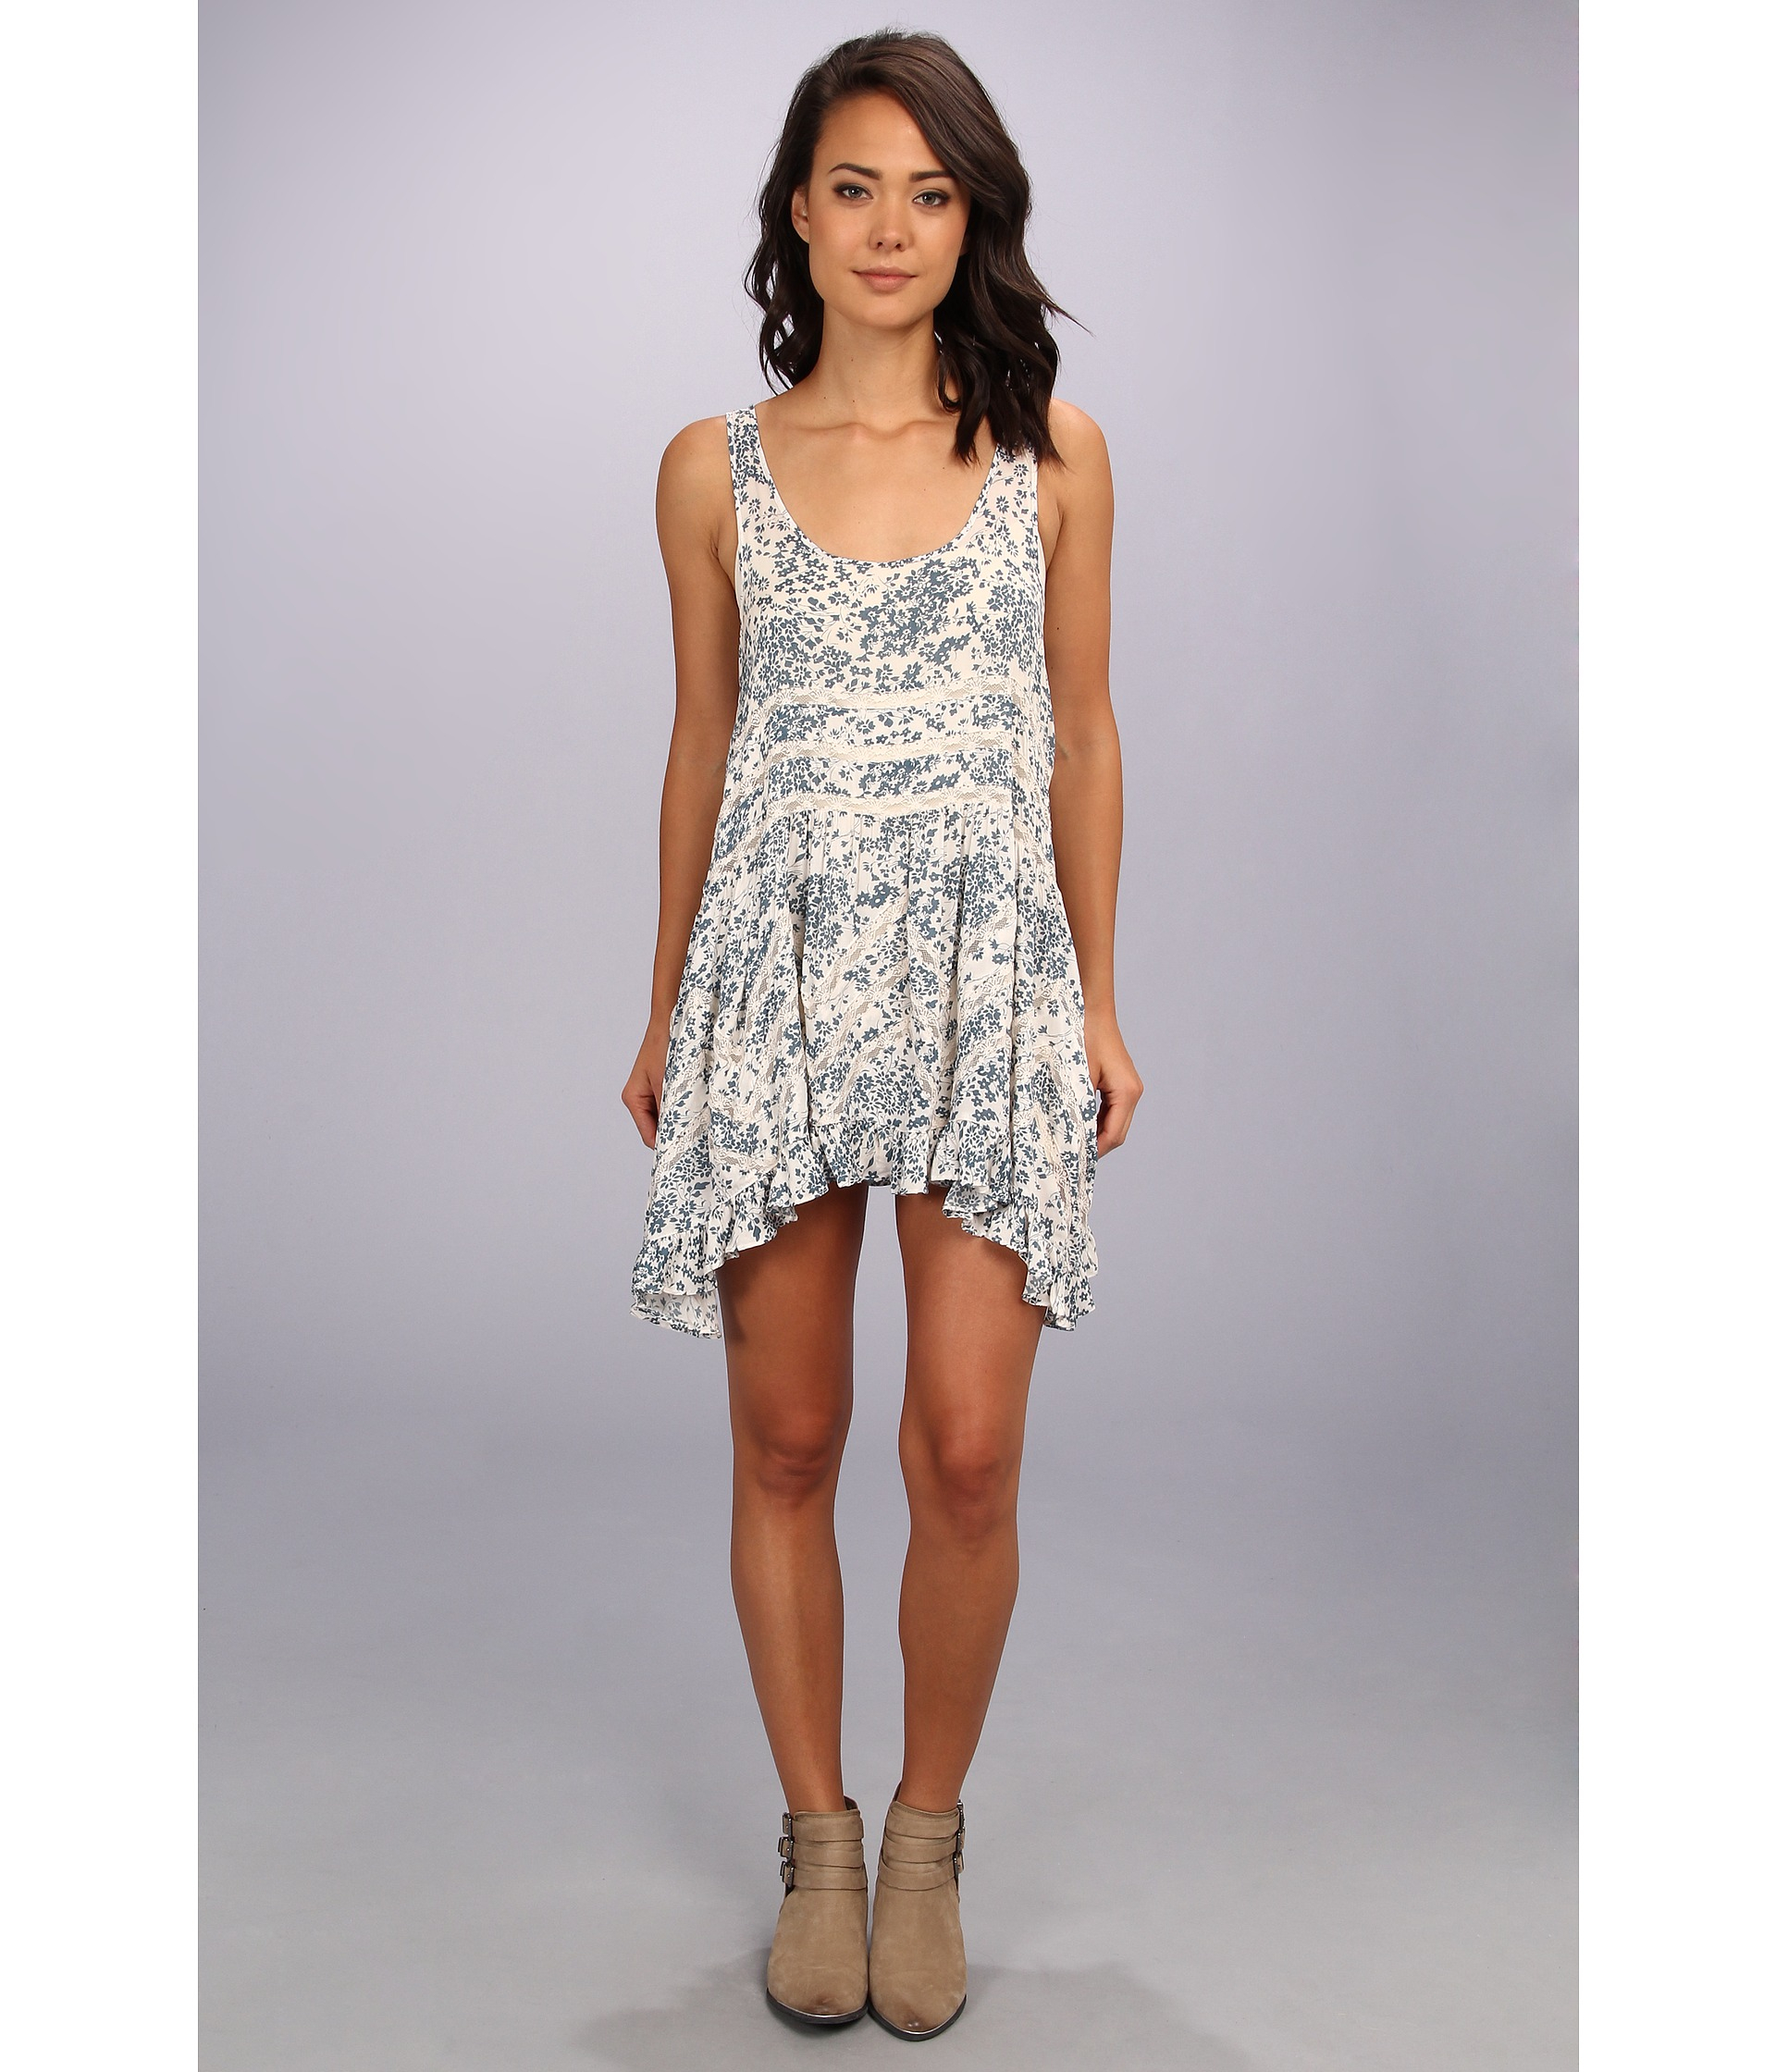 Lyst - Free People Floral Trapeze Slip Dress in Natural 97f9df3fe